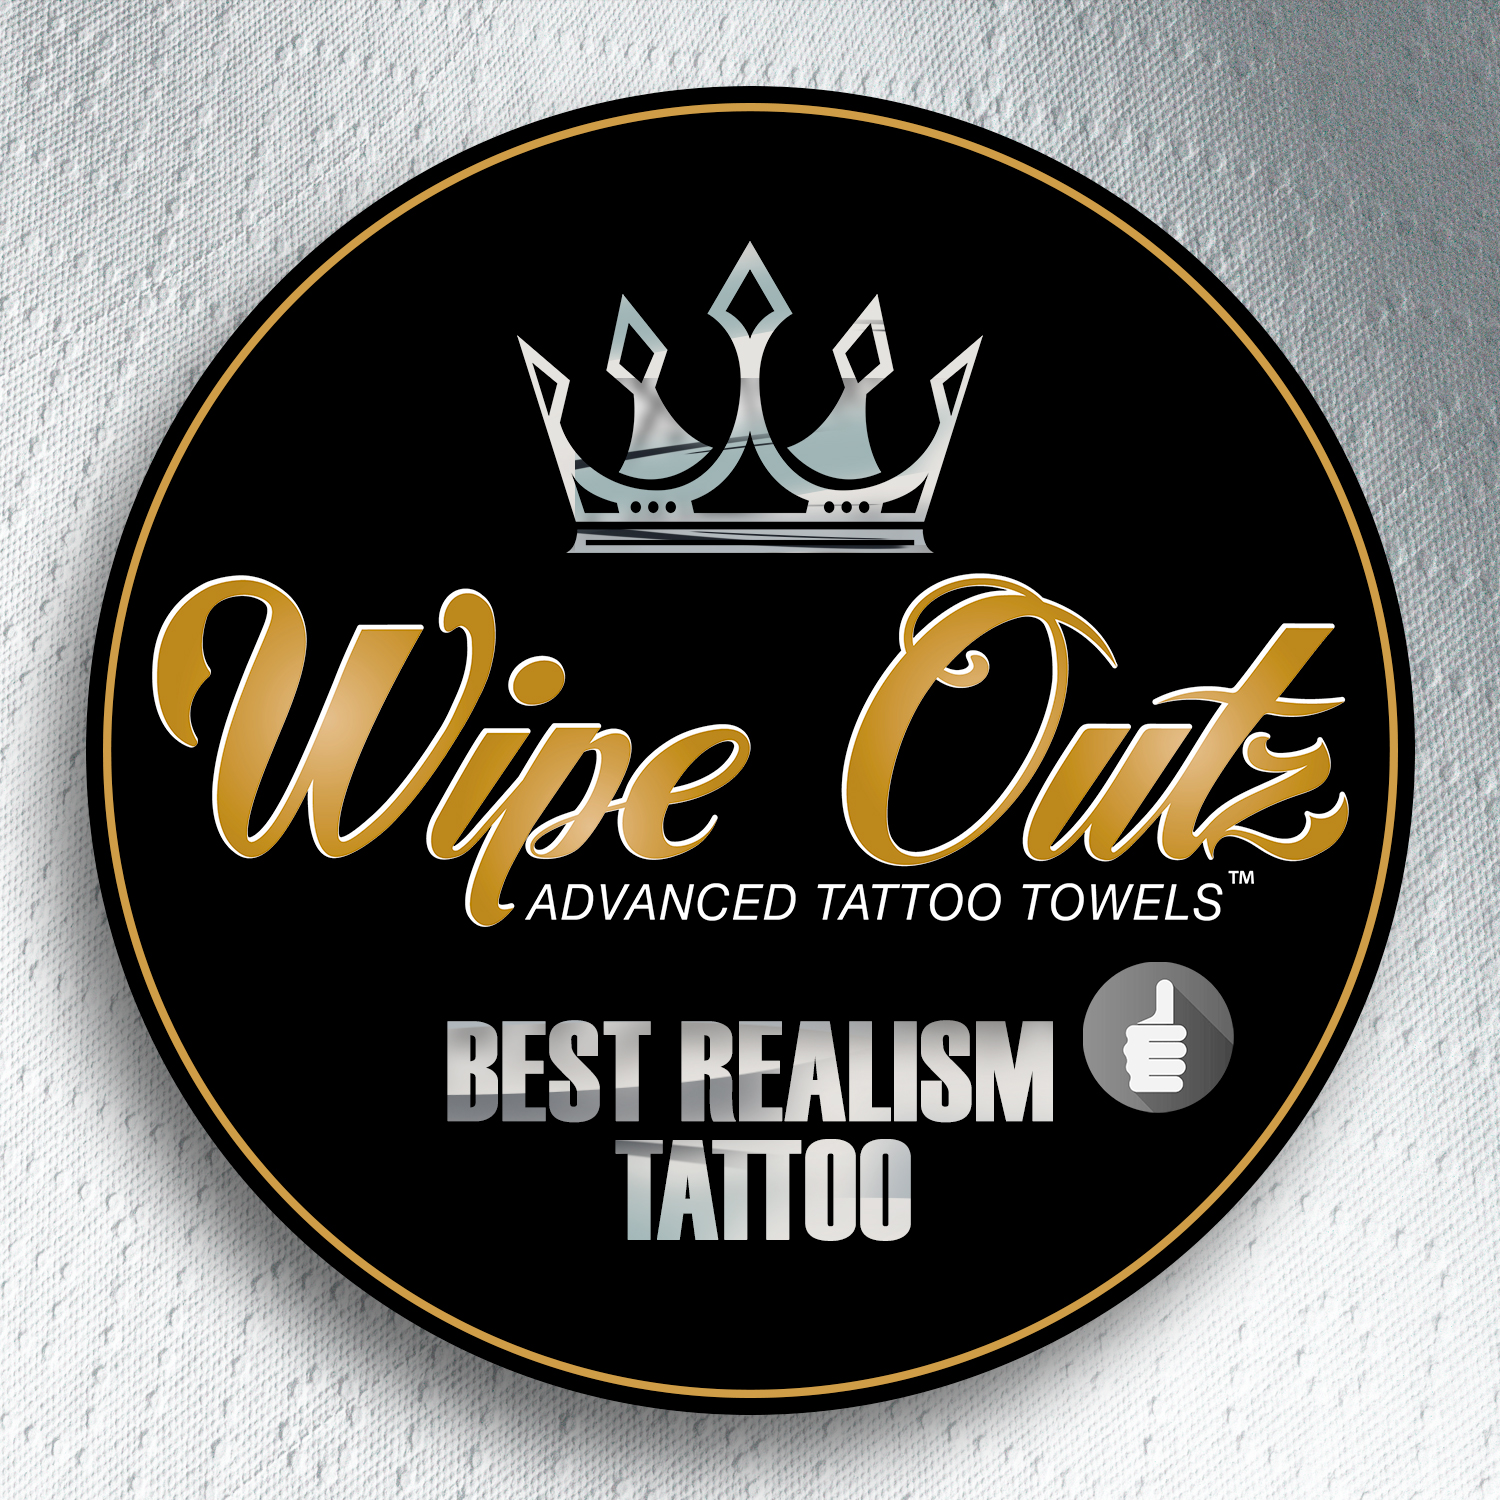 Wipe Outz | Best Photo Realism Tattoos May 2019